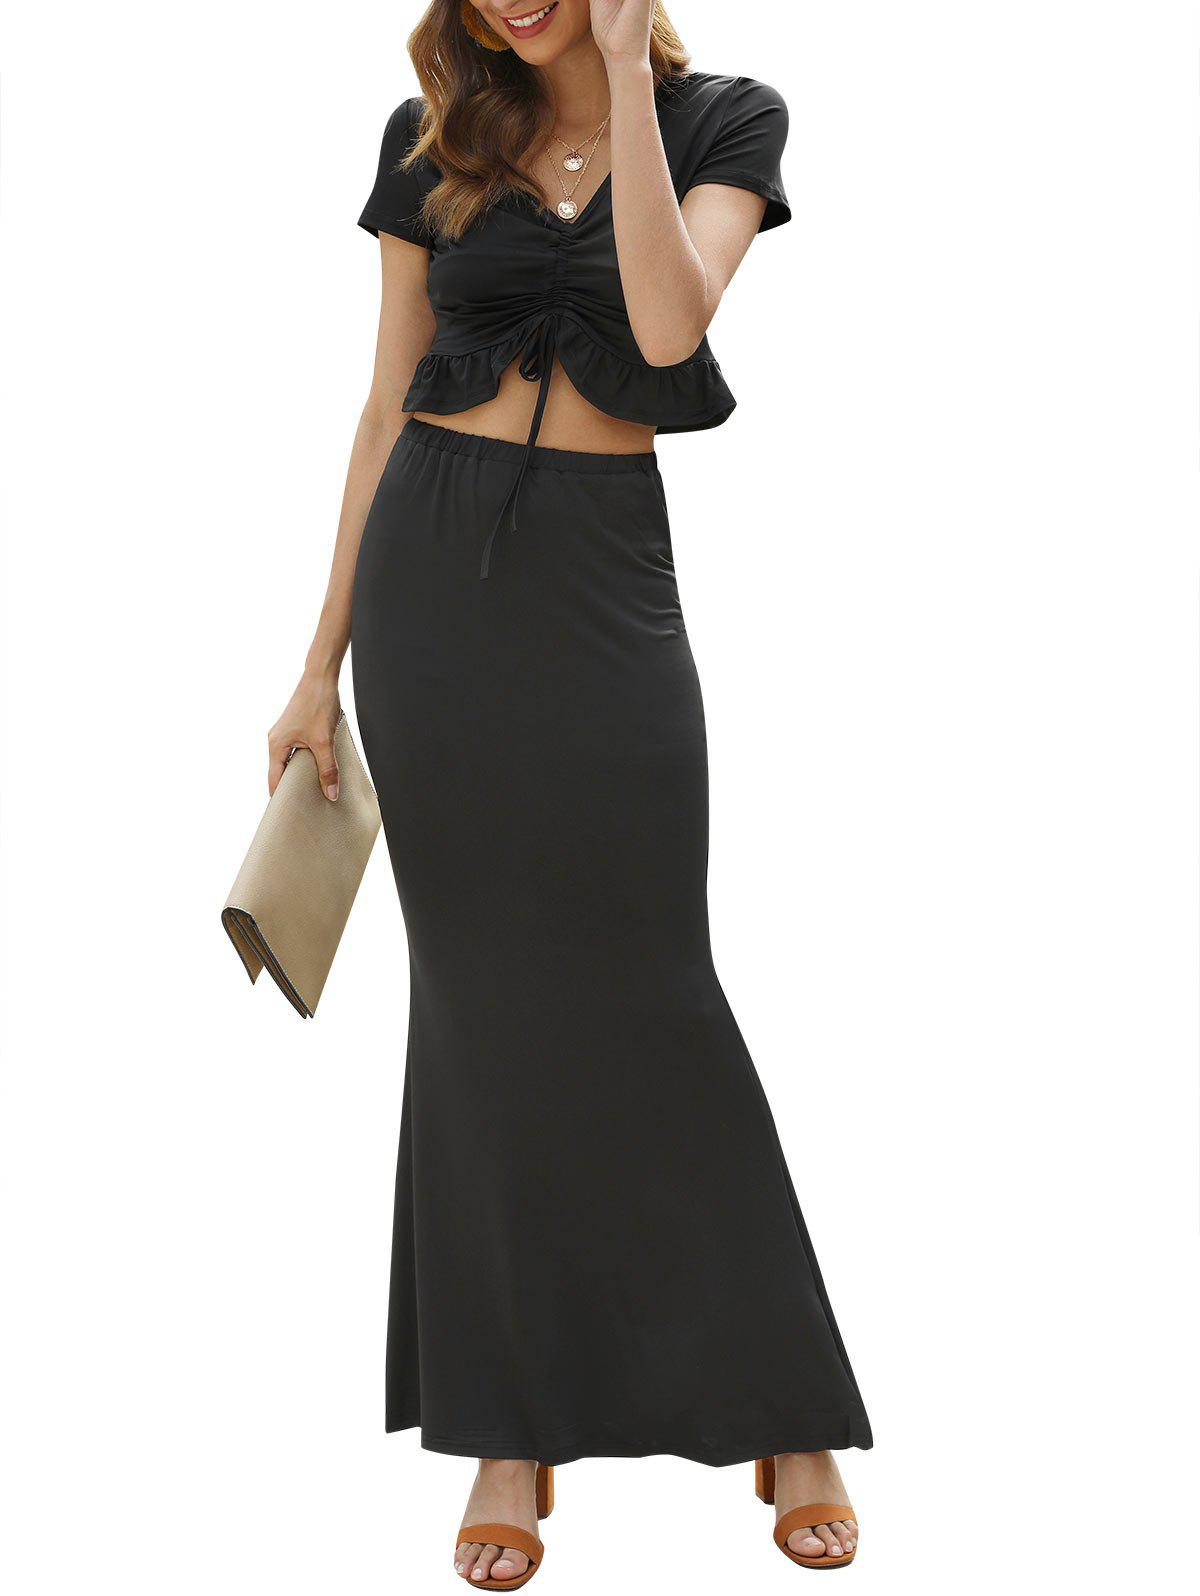 Ruffle Hem Cinched Crop Top and Maxi Skirt - BLACK XL